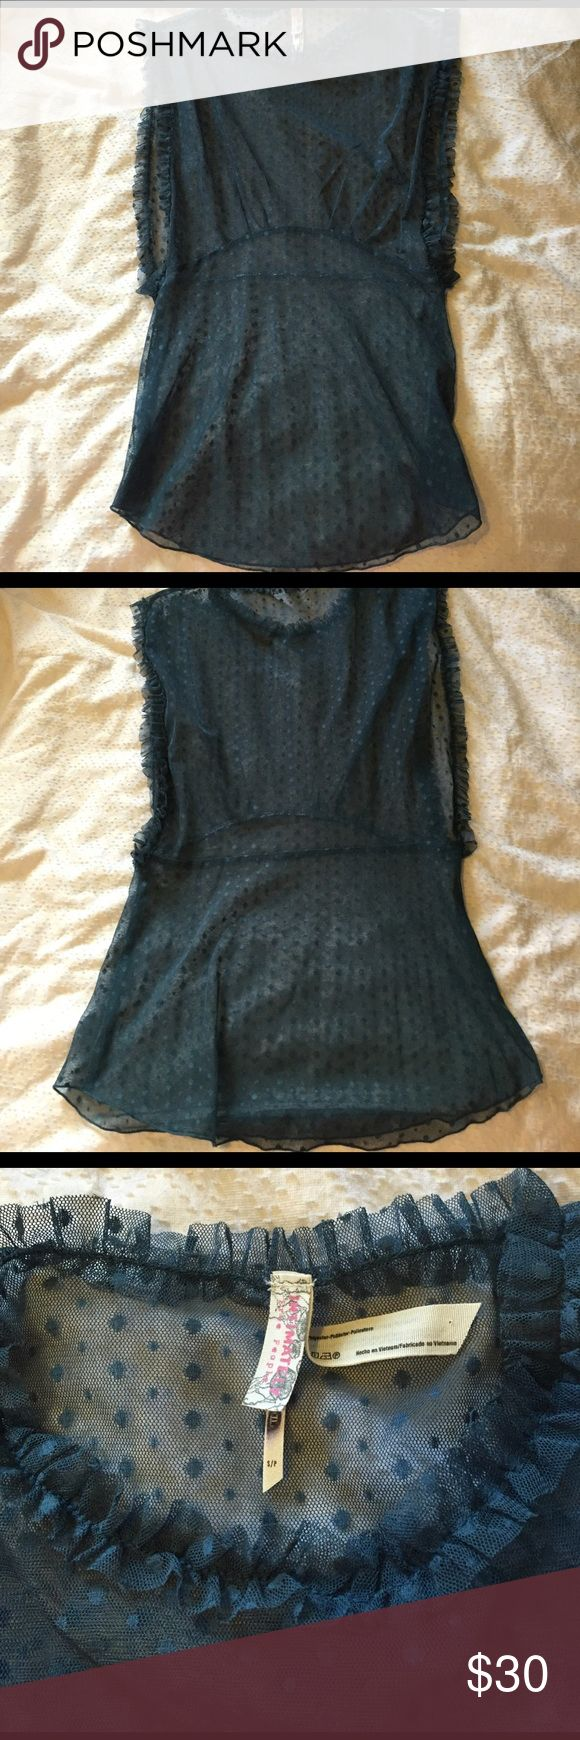 Free People Sheer Polka Dot Tank Teal Intimately Free People sheer polka dot tank. Very beautiful. Black mark on label from store of purchase. Only worn once, condition like new. Free People Tops Blouses